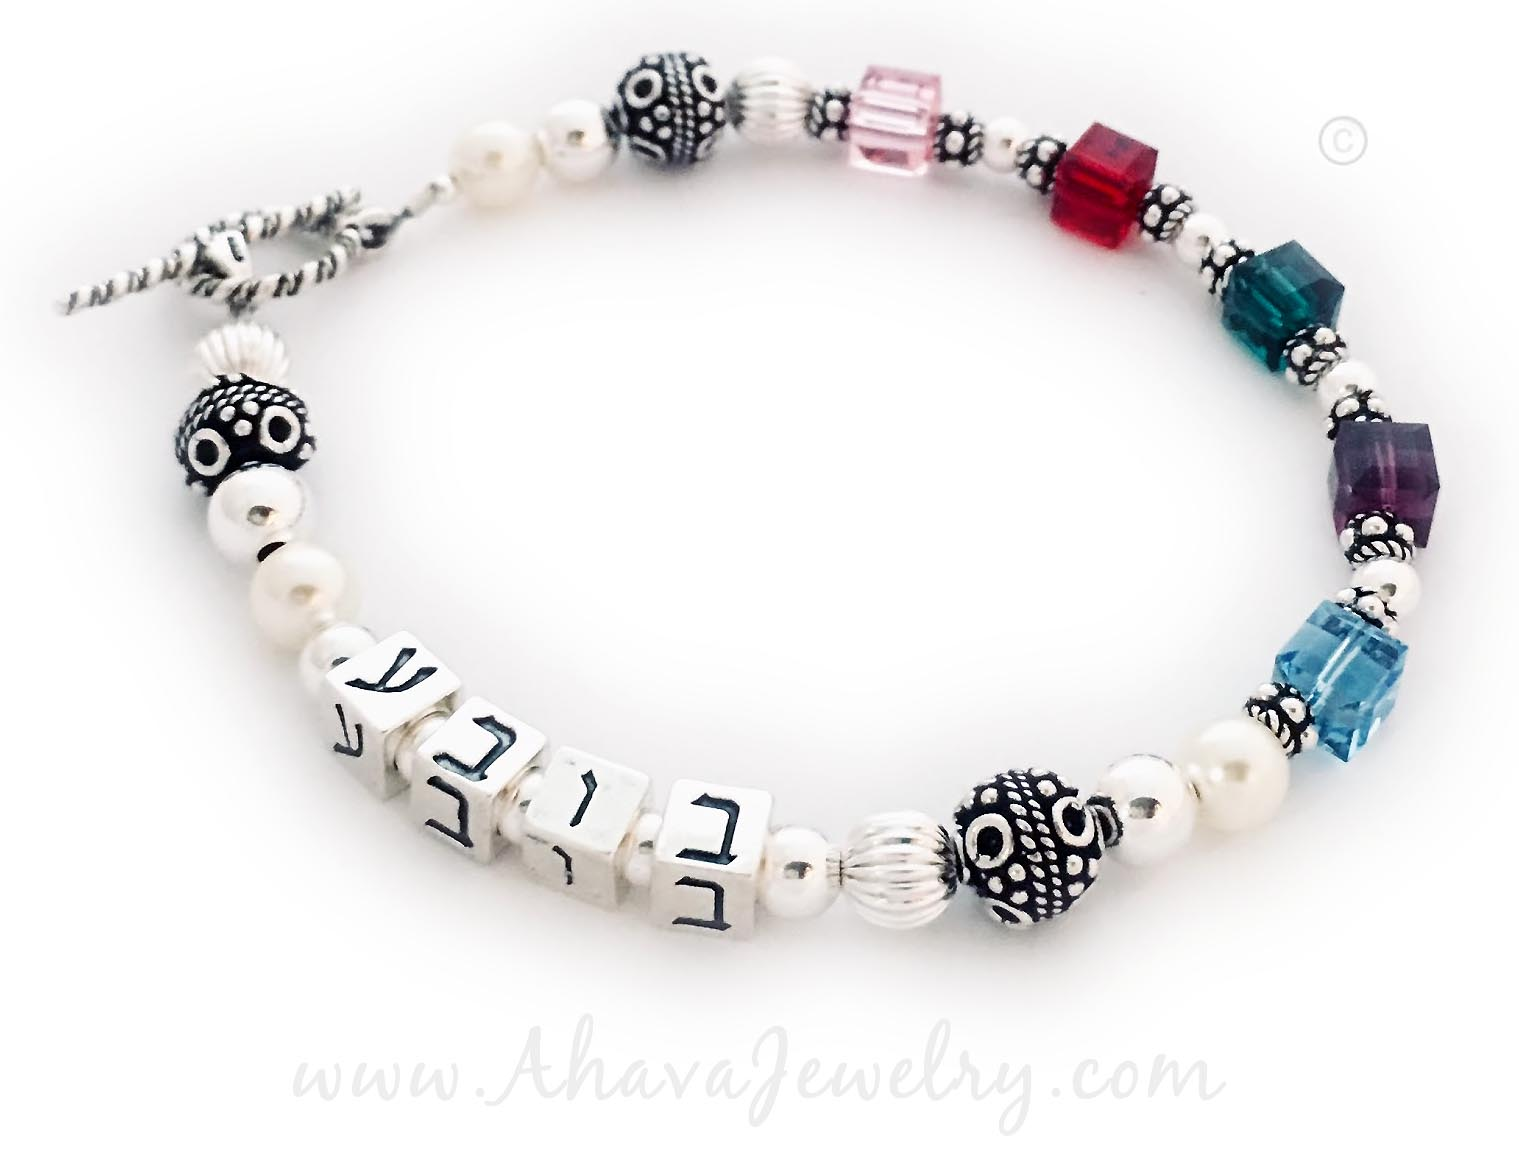 Bet Vuv Bet Ayin Bracelet (right to left) This Bubbe Bracelet is shown with a Twisted Toggle Clasp. Bubbe is written in Hebrew block letters. They offset the Bubbe and added March, February, May, July and October Birthstones - Aquamarine, Amethyst, Emerald, Ruby and Opal Birthstone Crystals.